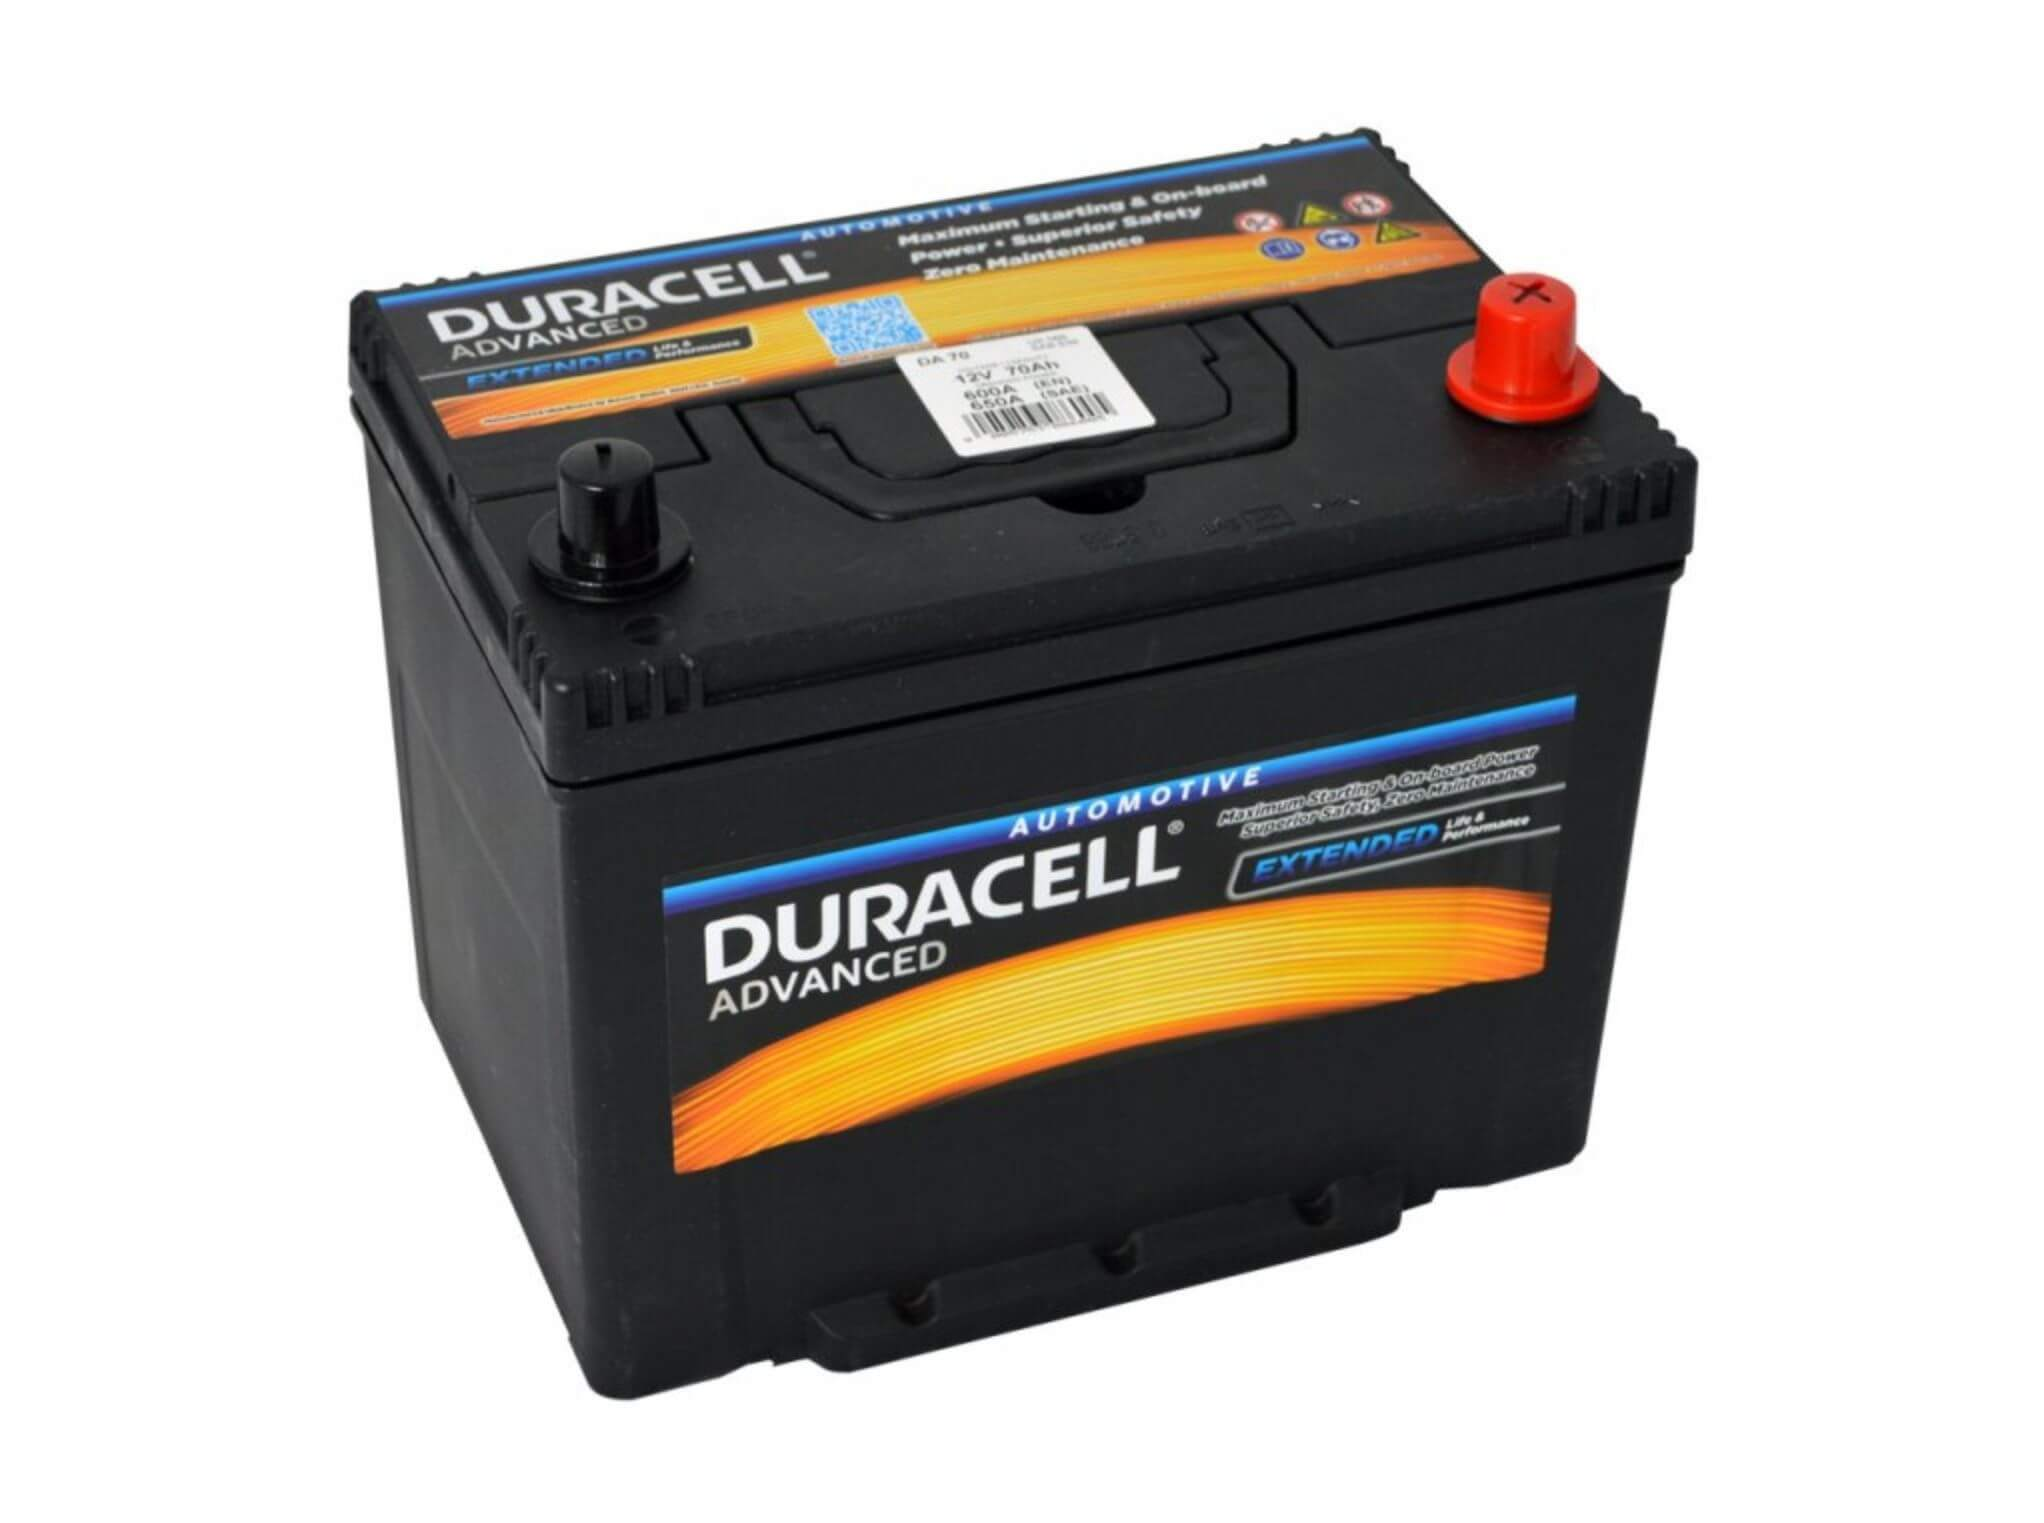 Duracell Advanced 12V 70Ah 600A